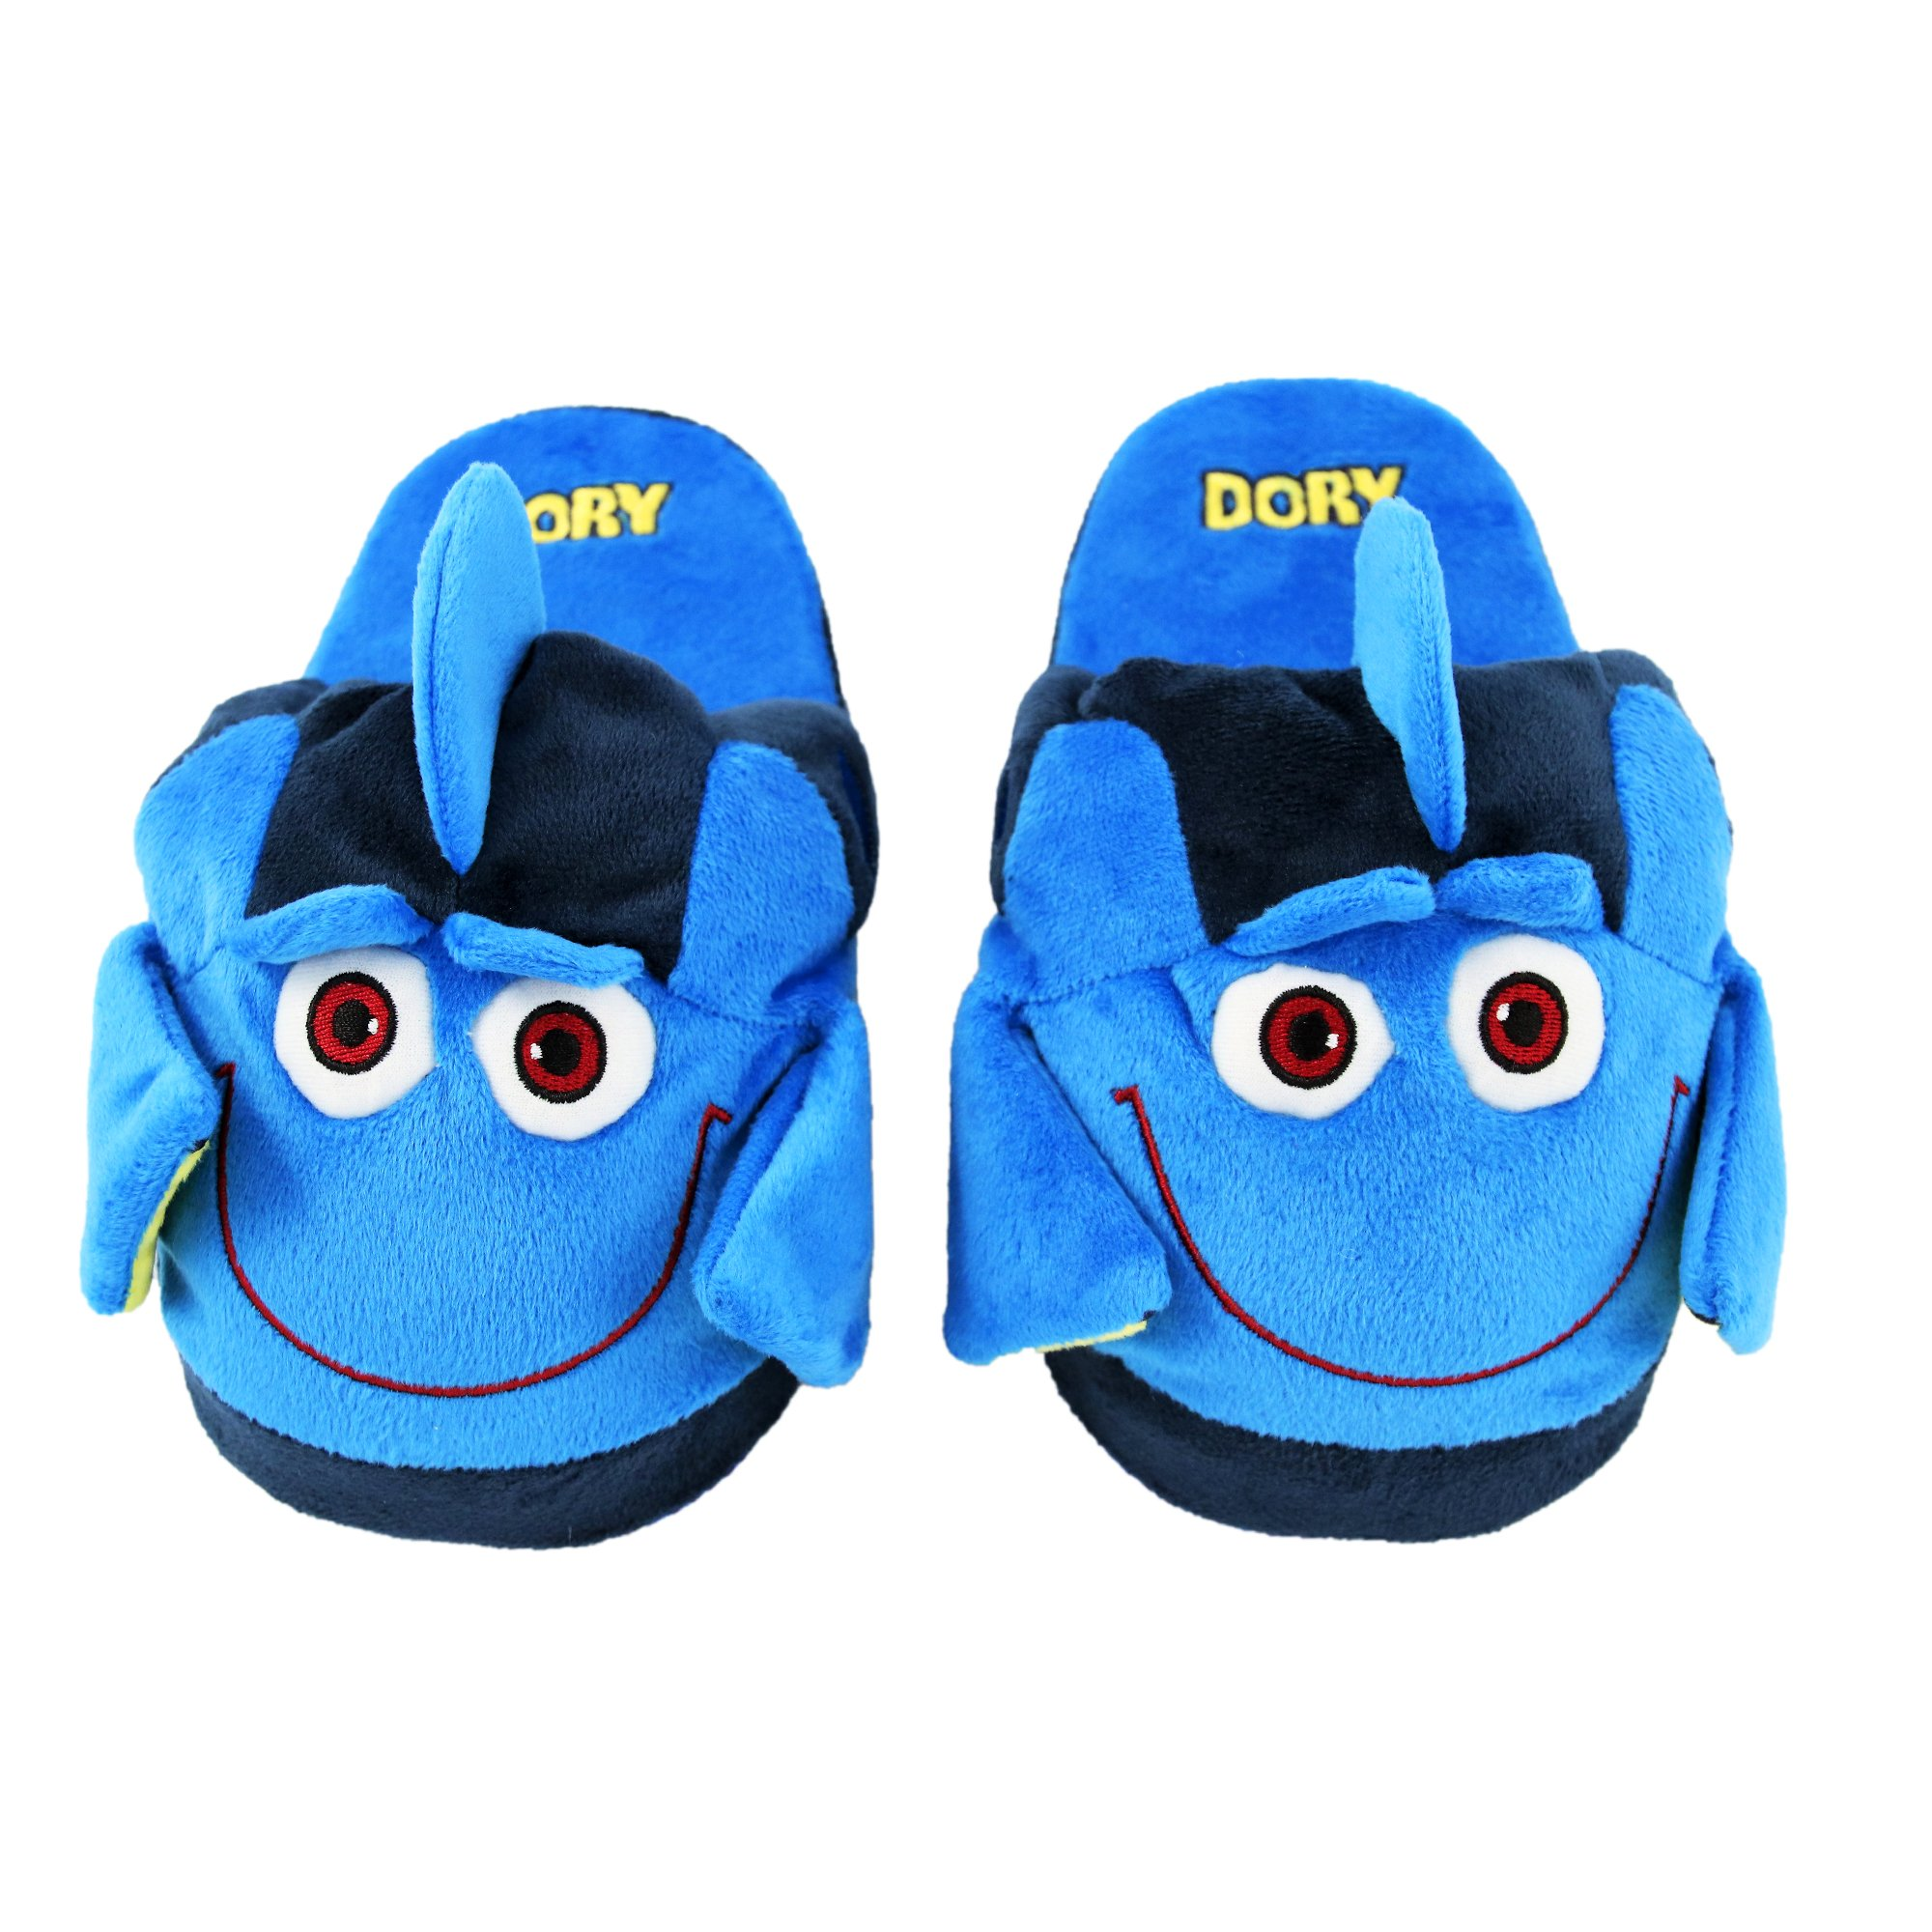 Stompeez Animated Dory Plush Slippers - Ultra Soft and Fuzzy - Fins Flap and Flutter as You Walk - Large by Stompeez (Image #1)